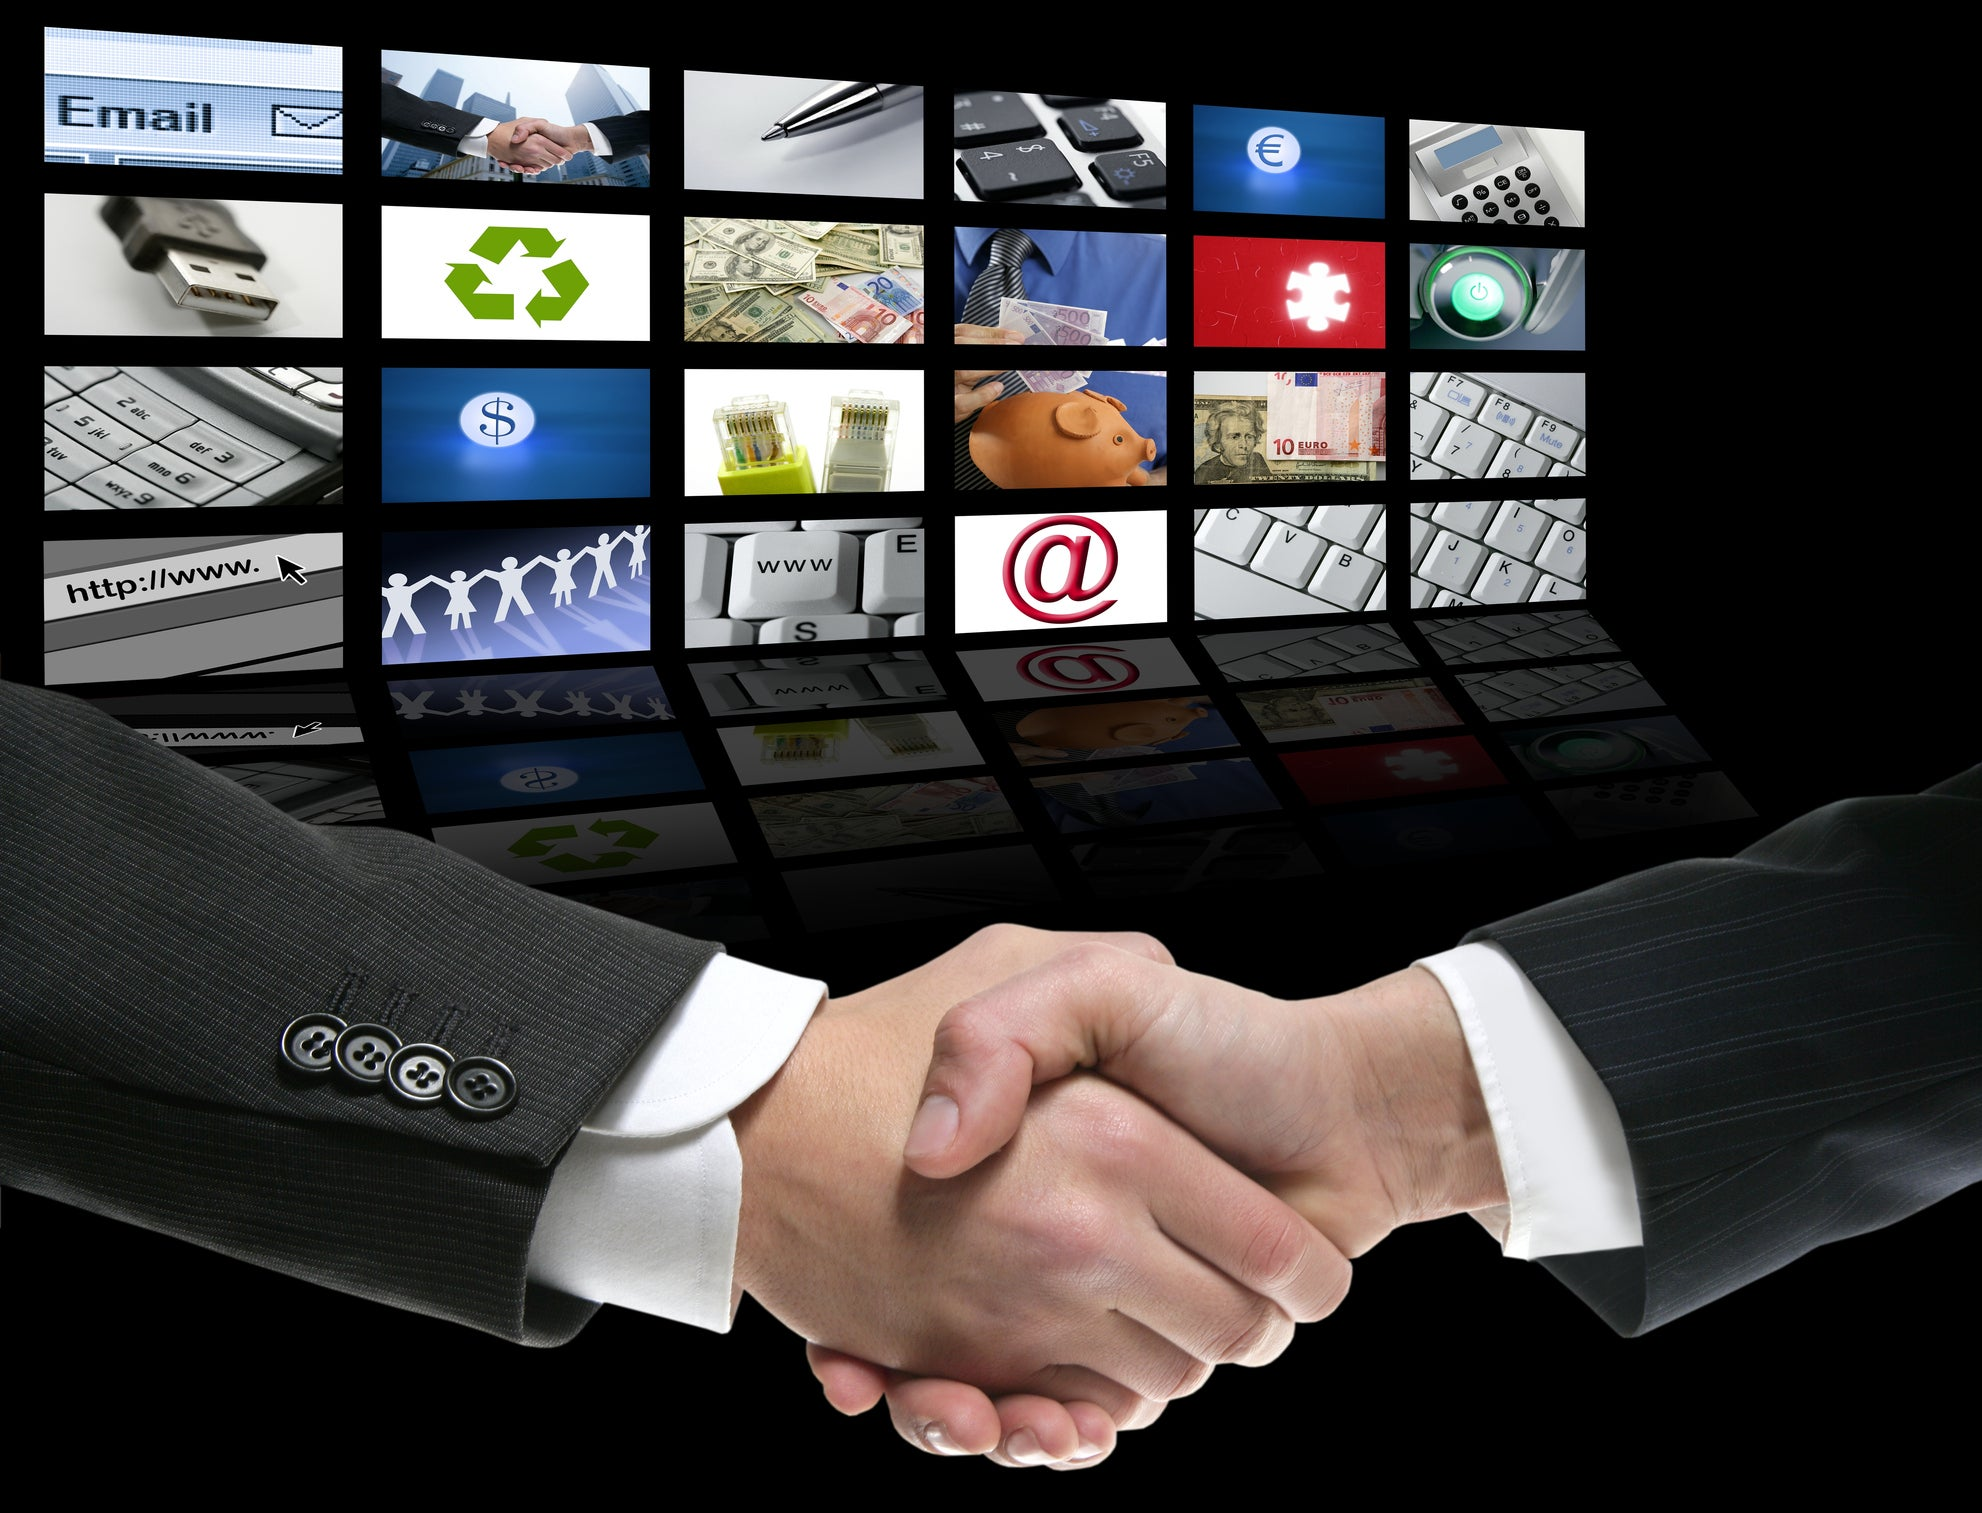 A handshake between two men in business blazers in front of a video wall, showing 24 different TV channels.